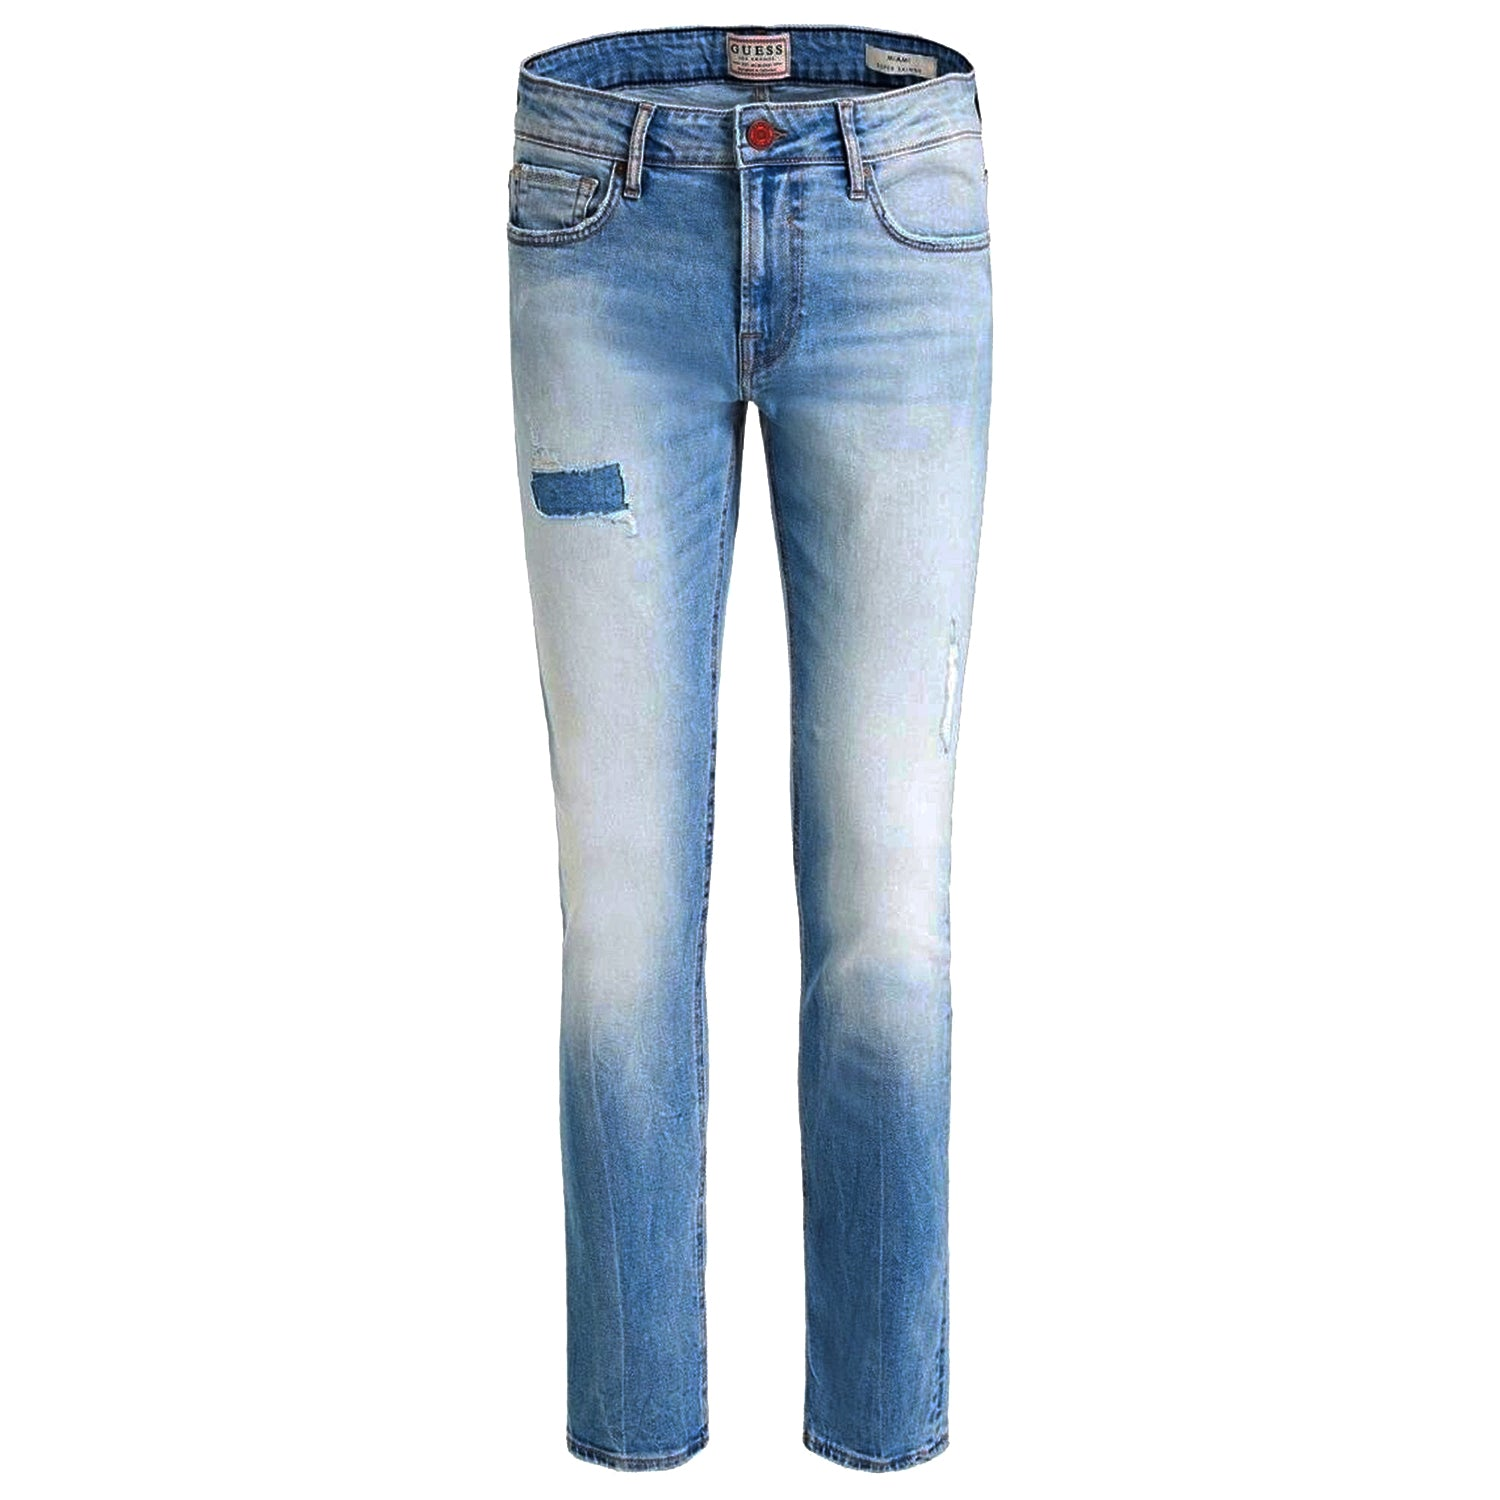 Guess Miami Super Skinny Washed Blue Jeans